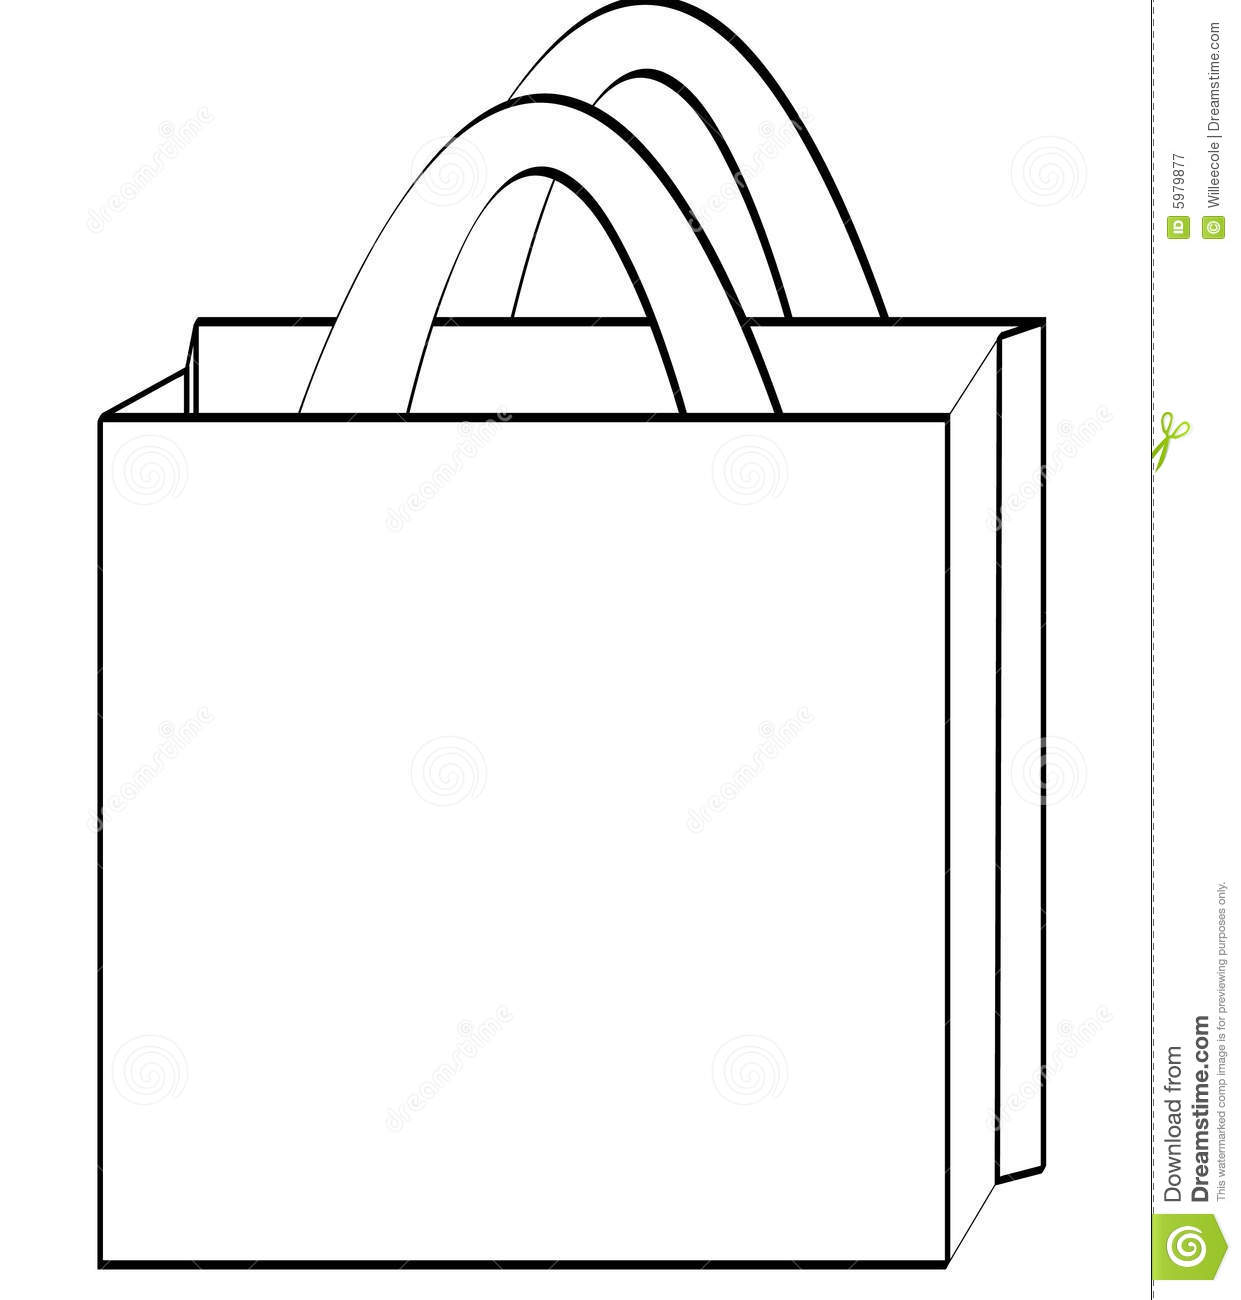 Shopping Bag Outline Royalty Free Stock Photography - Image: 5979877